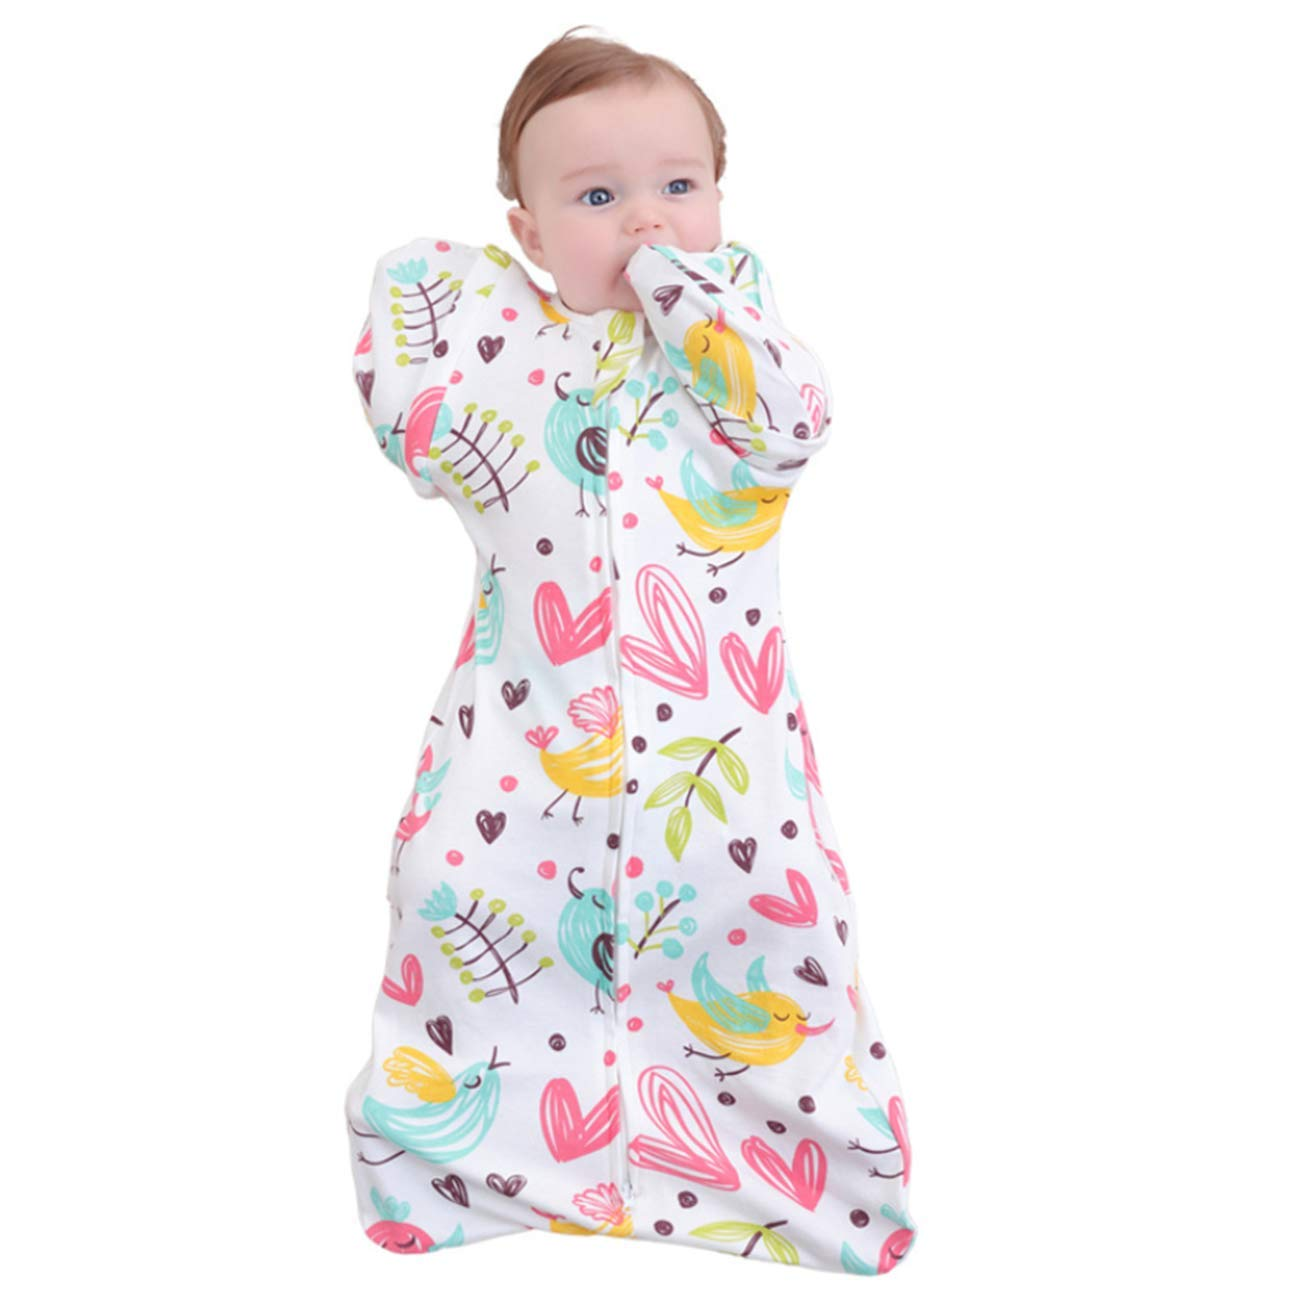 XIUHAO Newborn Sleeping Bag, Baby Quilt, Detachable Sleeves Double Zippered Cotton, for Little Babies by XIUHAO